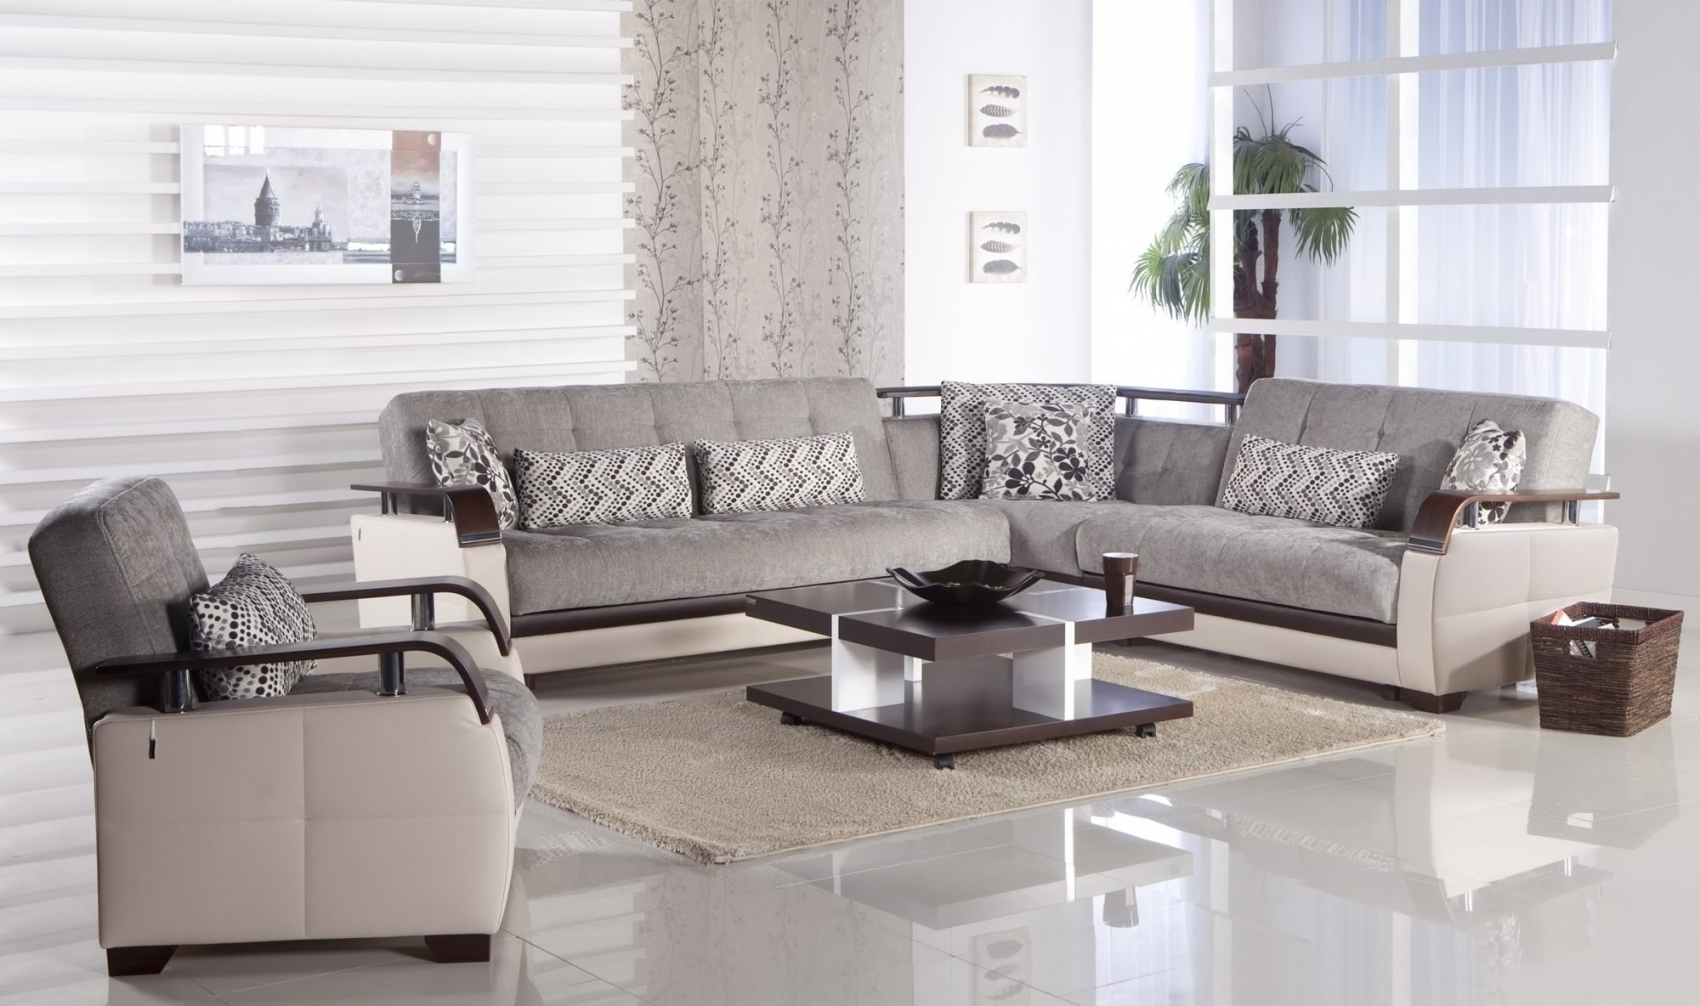 Sams Club Sectional Sofas Intended For Most Recent Beautiful Leather Sofa Sams Club – Calendrierdujeu For Sams (View 6 of 20)